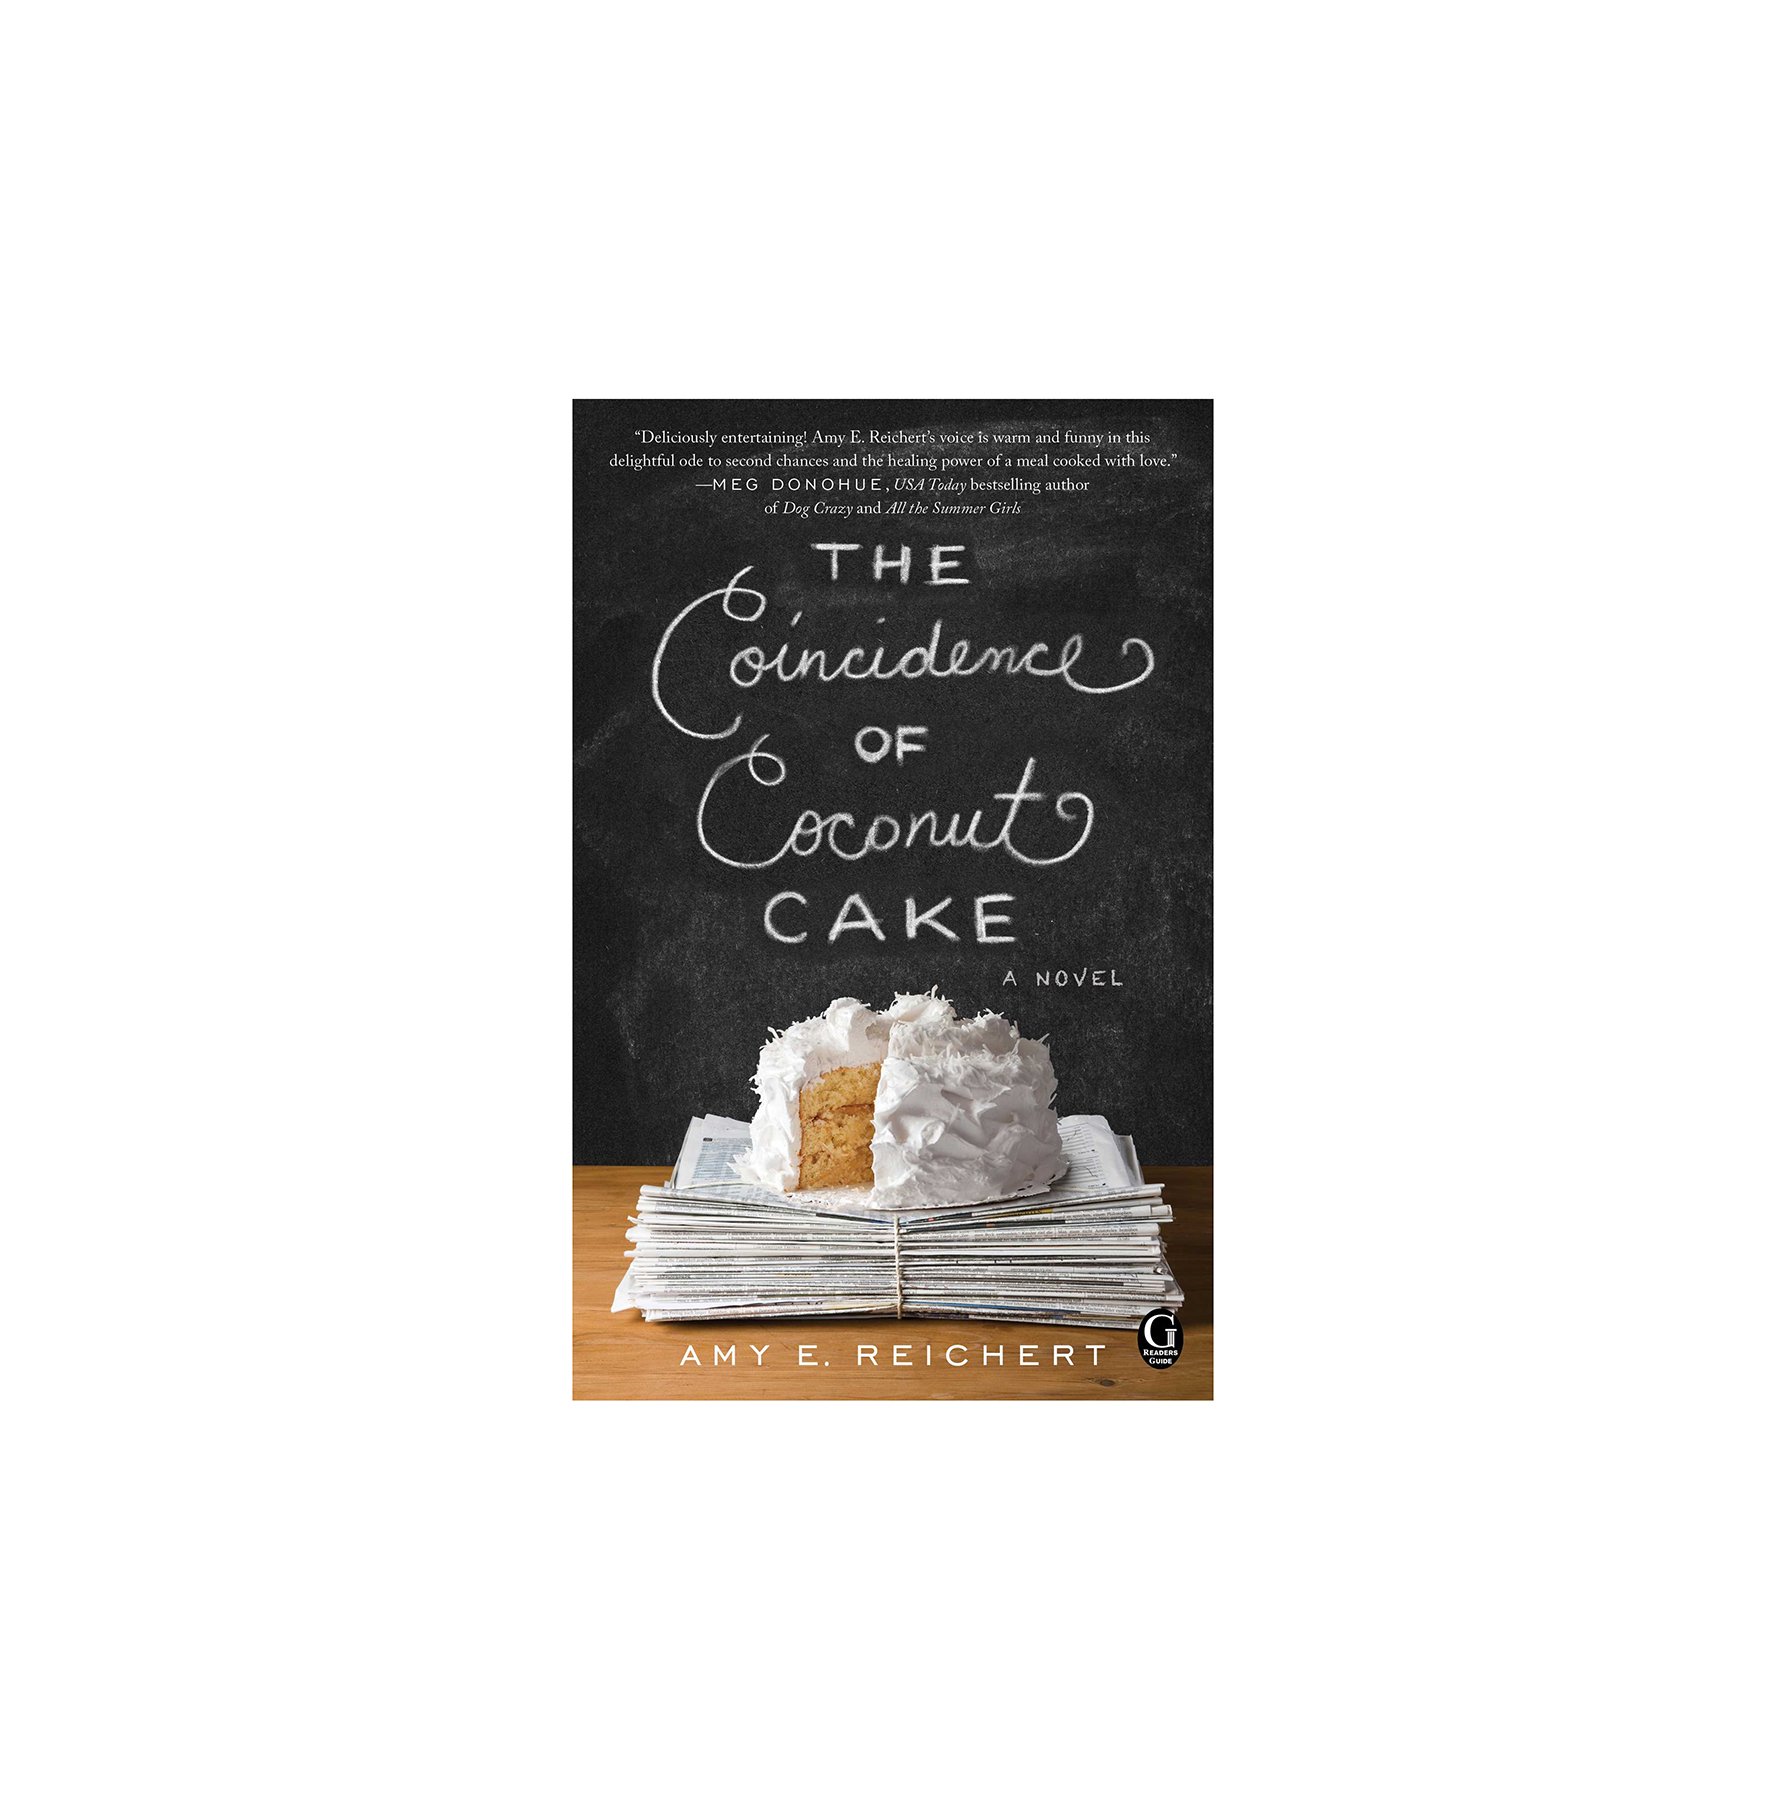 The Coincidence of Coconut Cake, by Amy E. Reichert